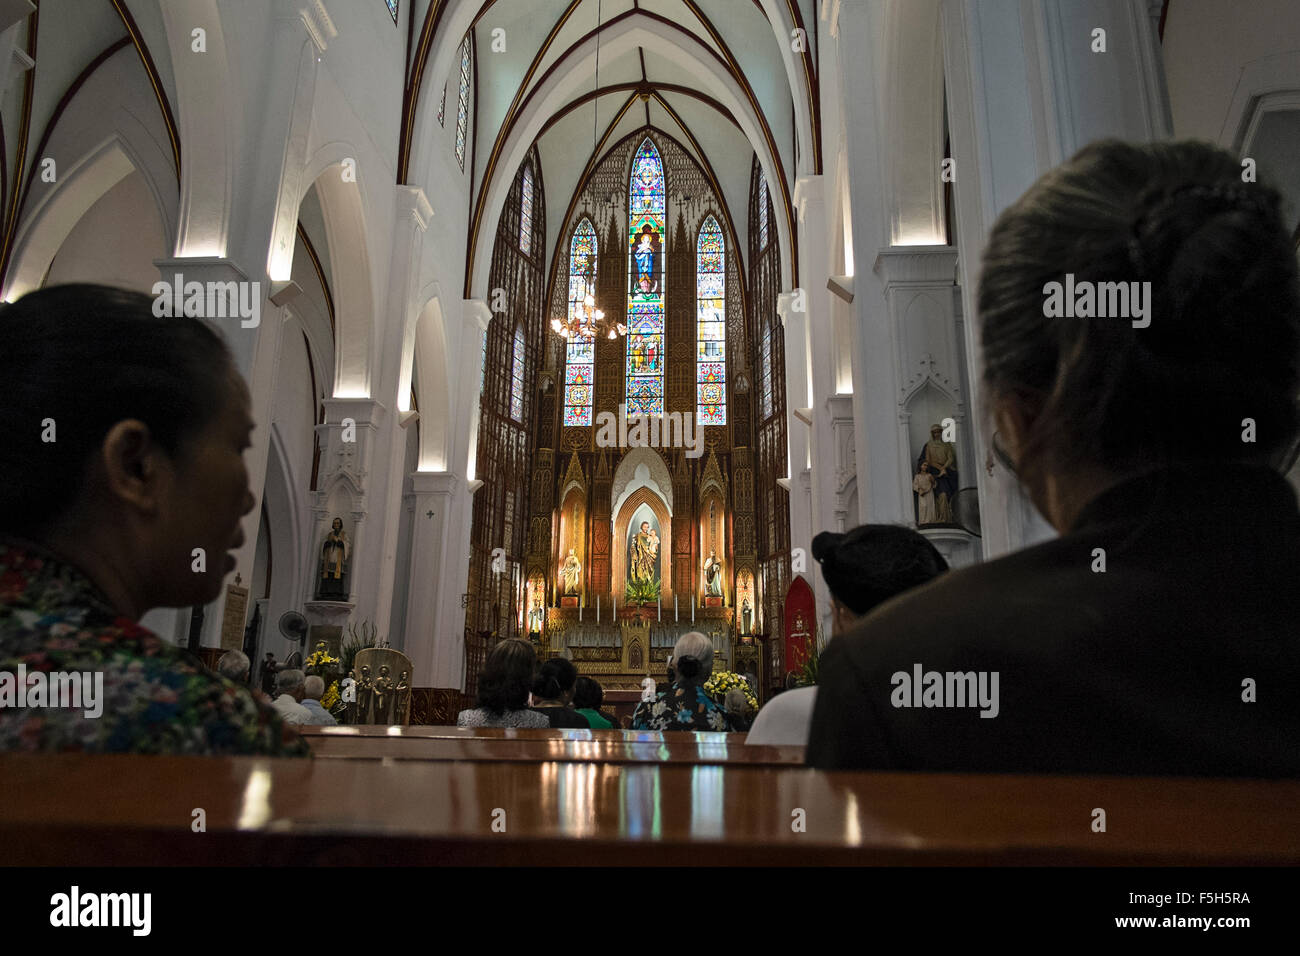 Worshipers in St Josephs Catholic Cathedral, Hanoi, Hoan Kiem, Vietnam - Stock Image